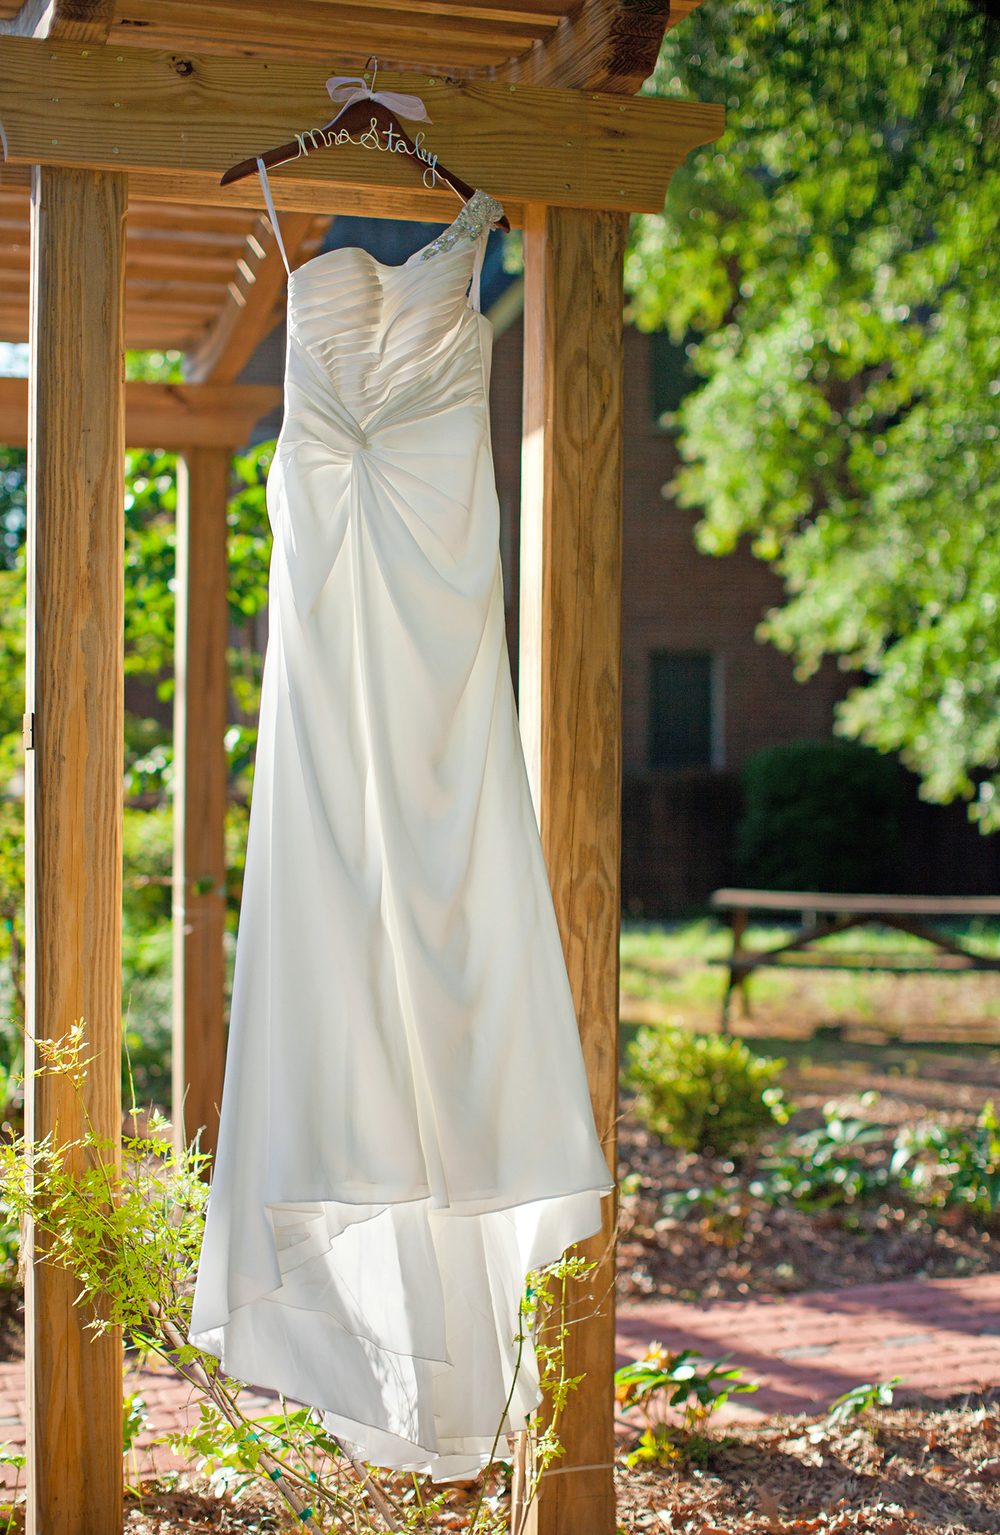 A Wedding Dress at Fairmont United Methodist Church